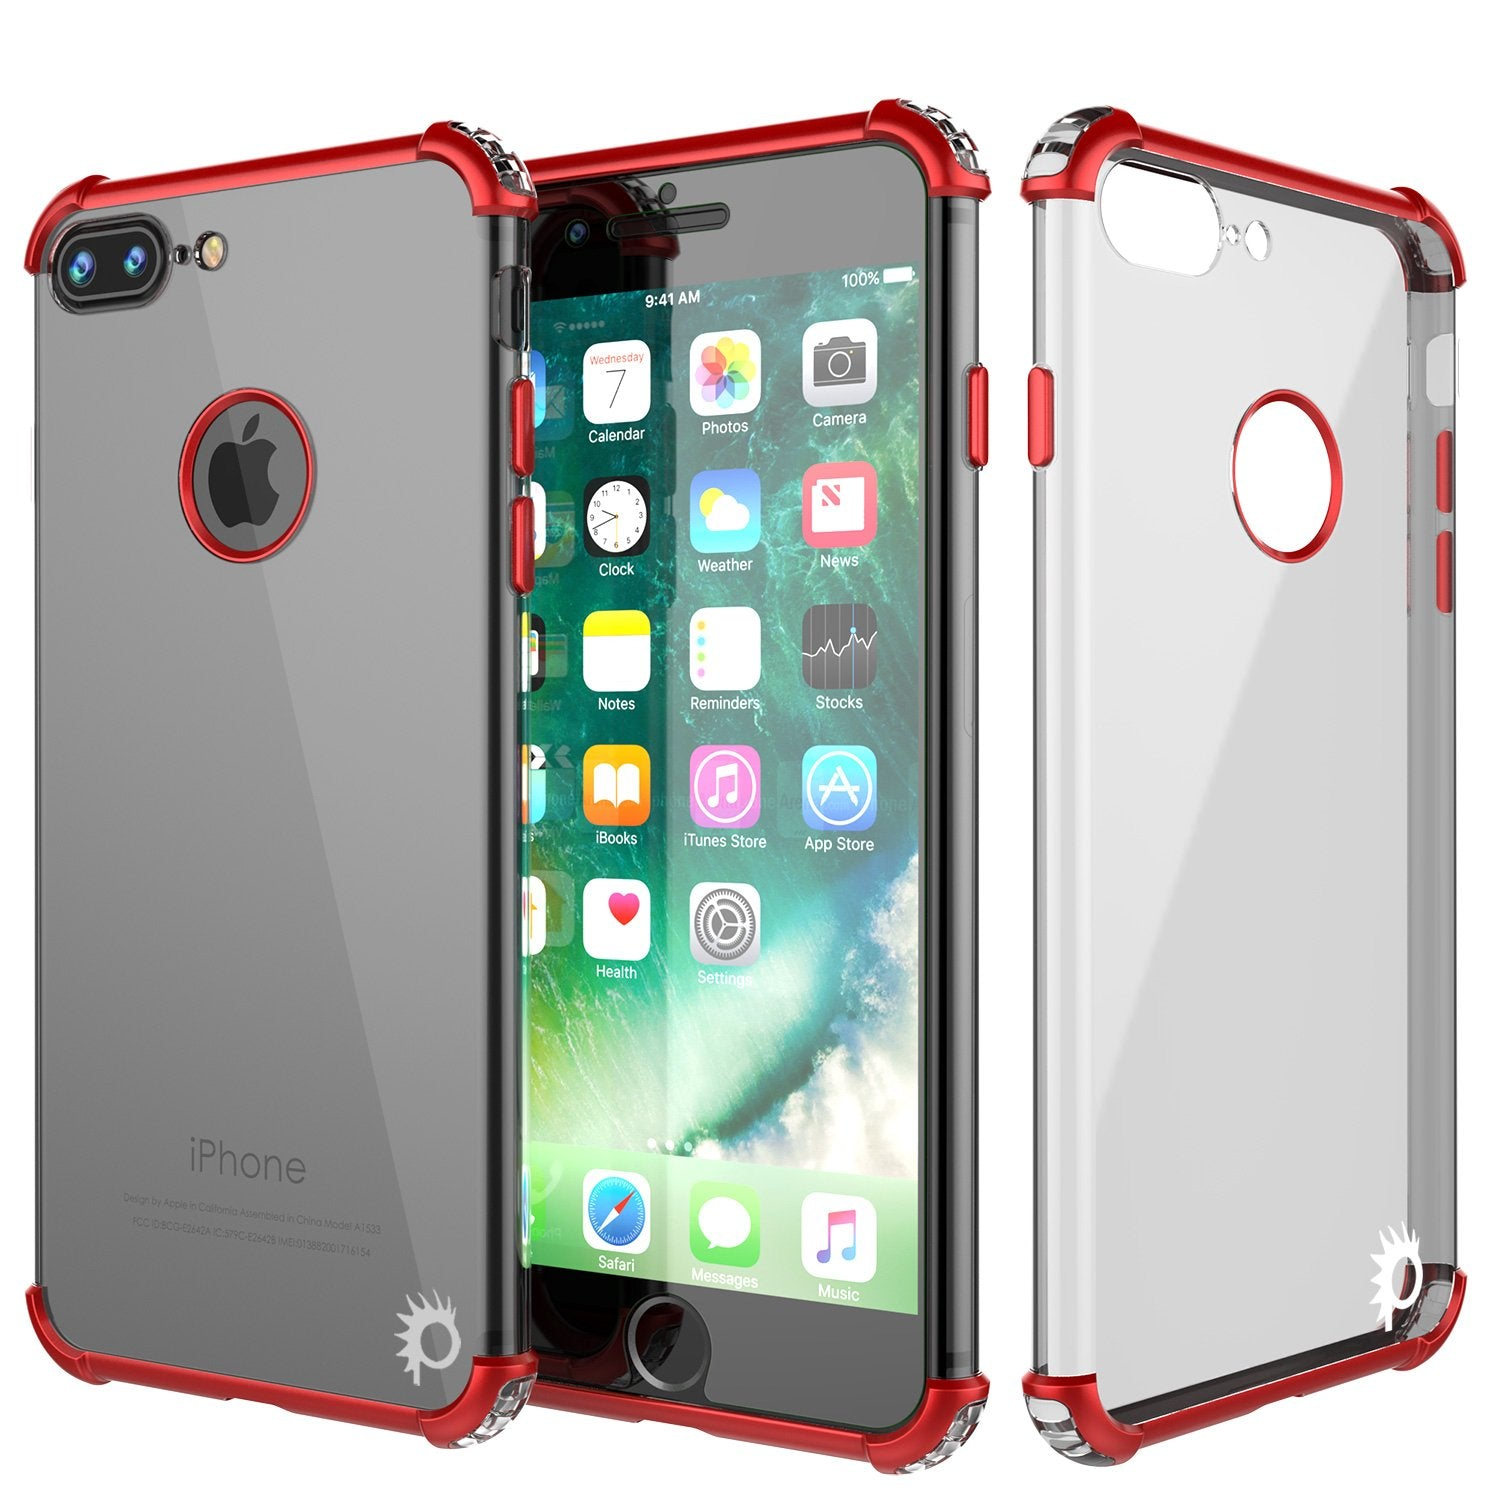 iPhone 7 PLUS Case, Punkcase [BLAZE SERIES] Protective Cover W/ PunkShield Screen Protector [Shockproof] [Slim Fit] for Apple iPhone 7 PLUS [Red]